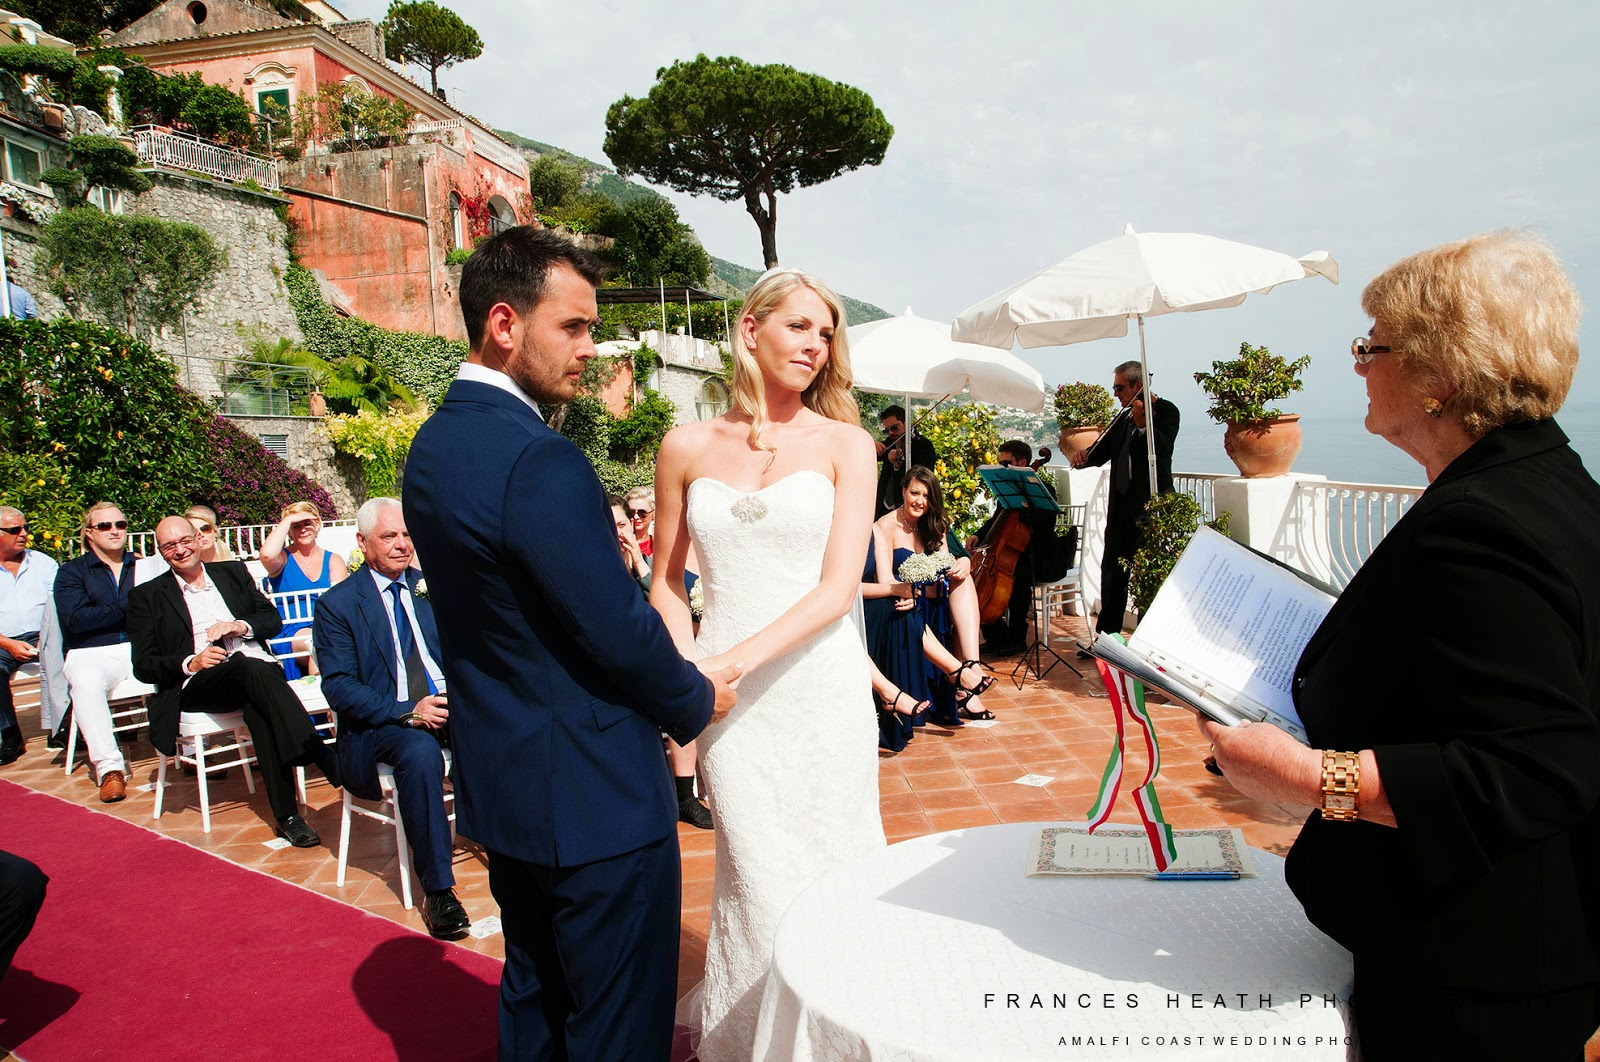 Symbolic ceremony at Hotel Marincanto in Positano